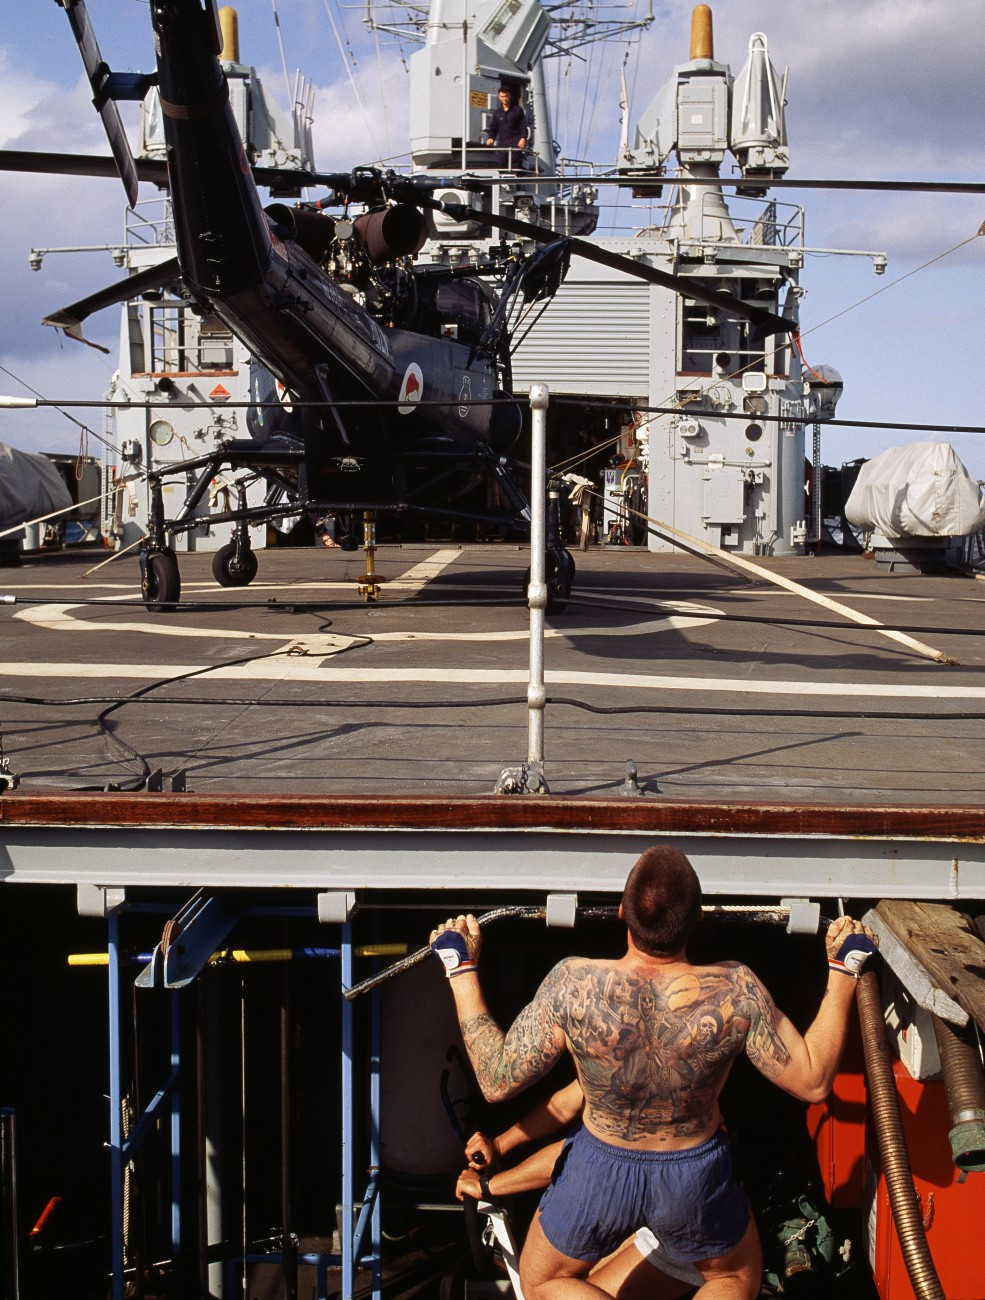 Tattoos are a part of naval traditions, and those desirous of this form of decoration soon learn in which port cities the best tattooists live. More ambitious artworks are usually outlined during the first appointment, then coloured in over succeeding months or even years as the sailor's finances and the ship's itinerary permit. Leading Seaman Jim Wilson has one of the most elaborately ornamented backs in the navy.